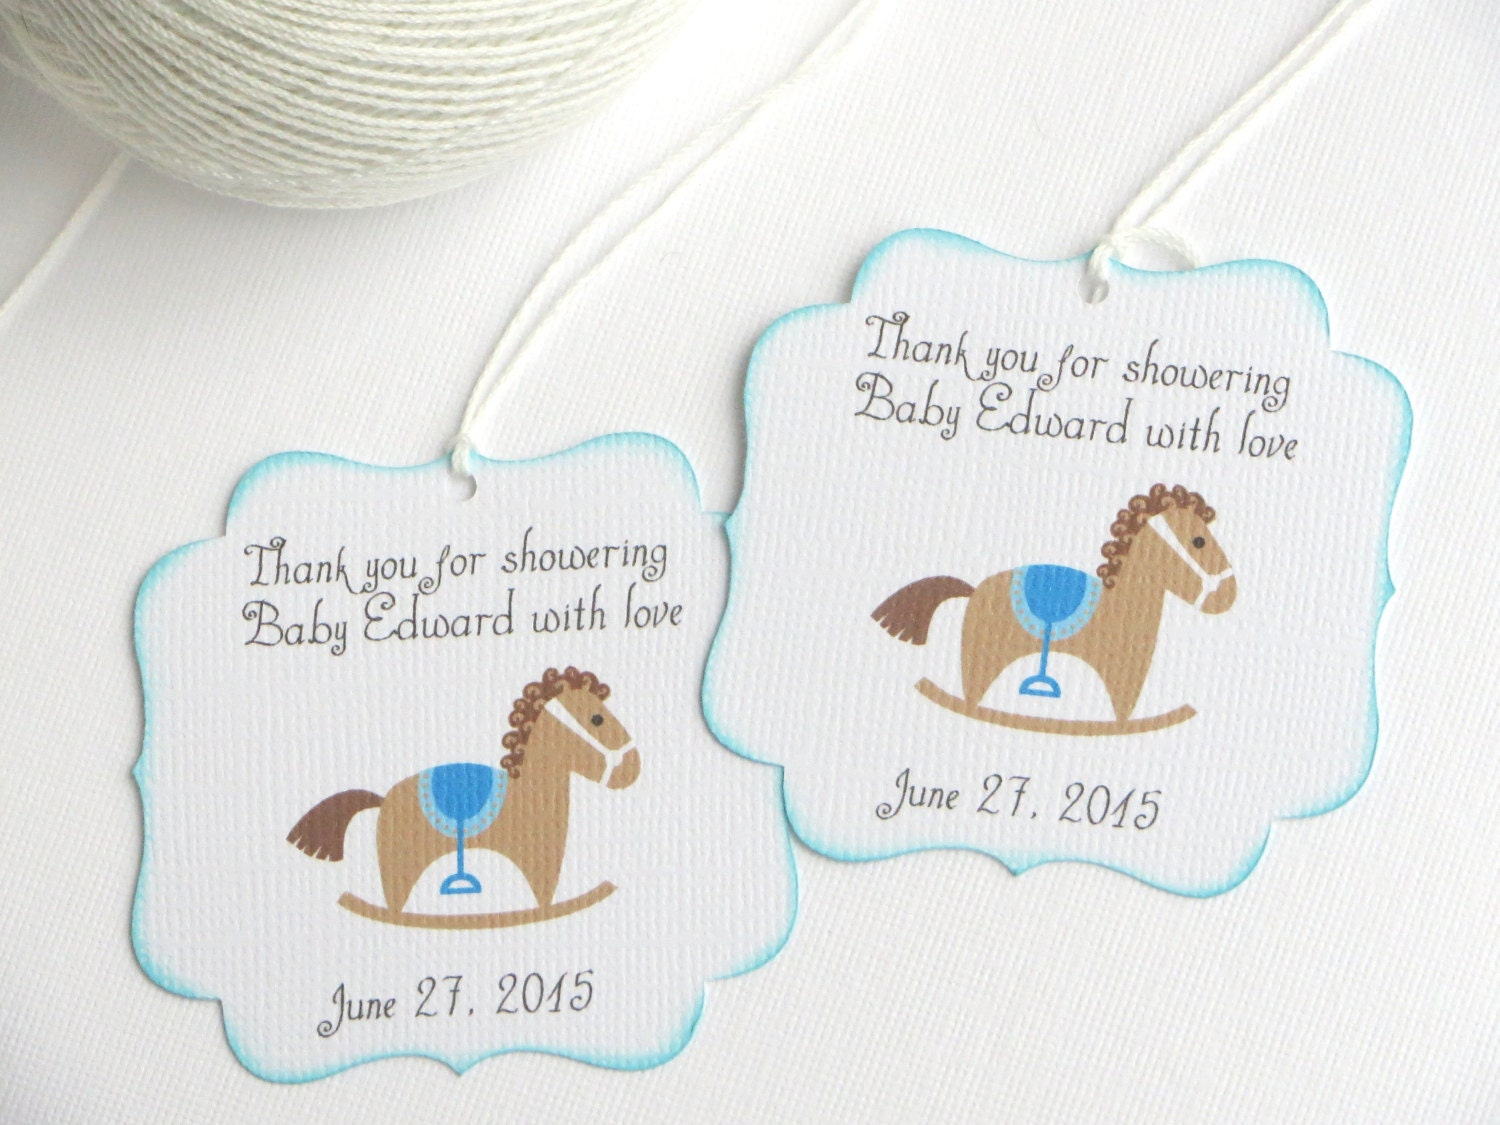 Amazing Baby Shower Favor Tags With Rocking Horse, Kids Party Favor Tags, Blue Baby  Shower Thank You Tags, Blue Birthday Party Favor Tags